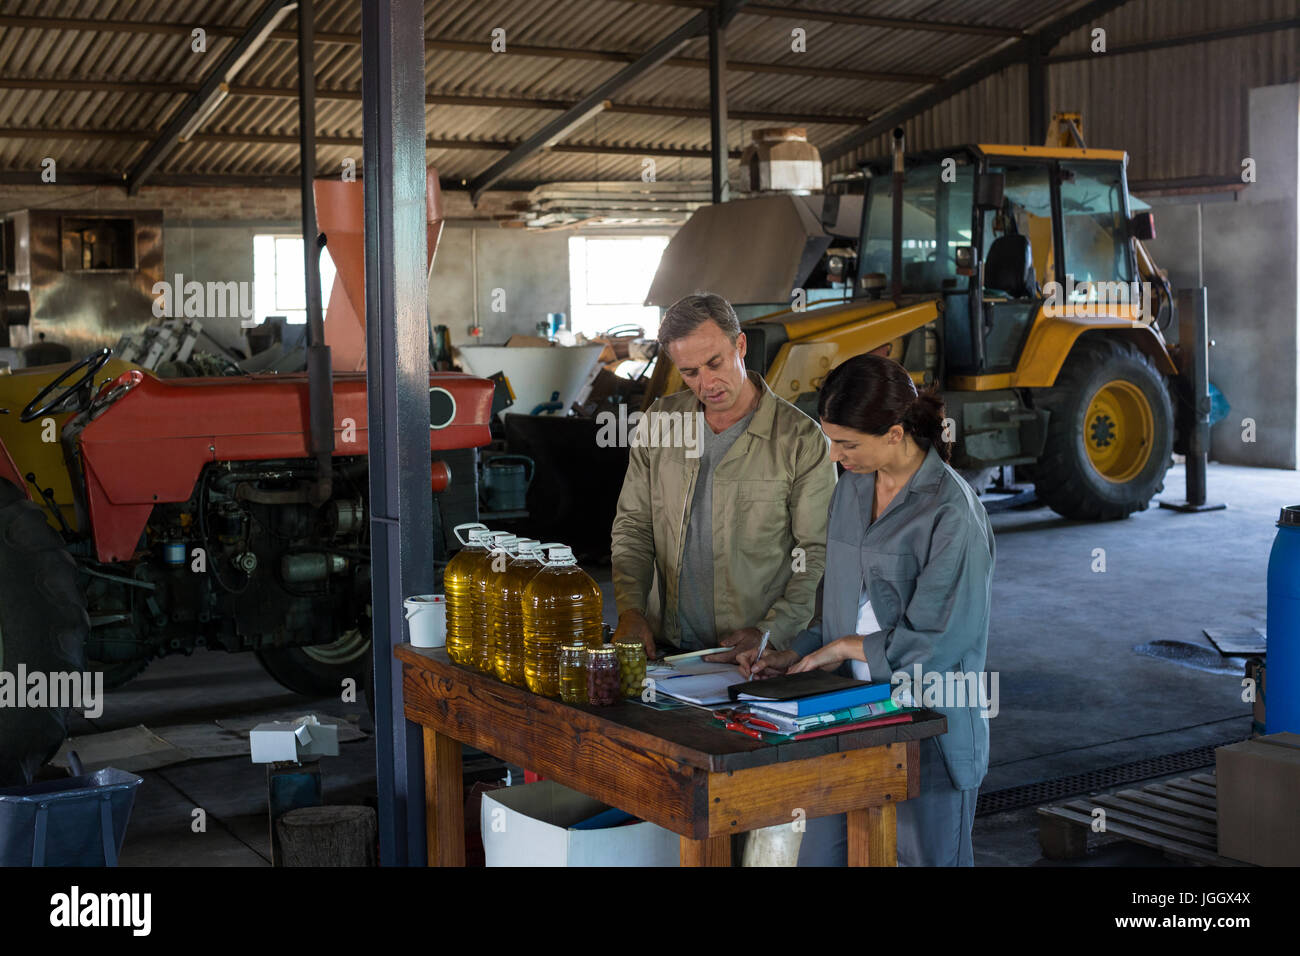 Workers maintaining record in book at olive factory - Stock Image